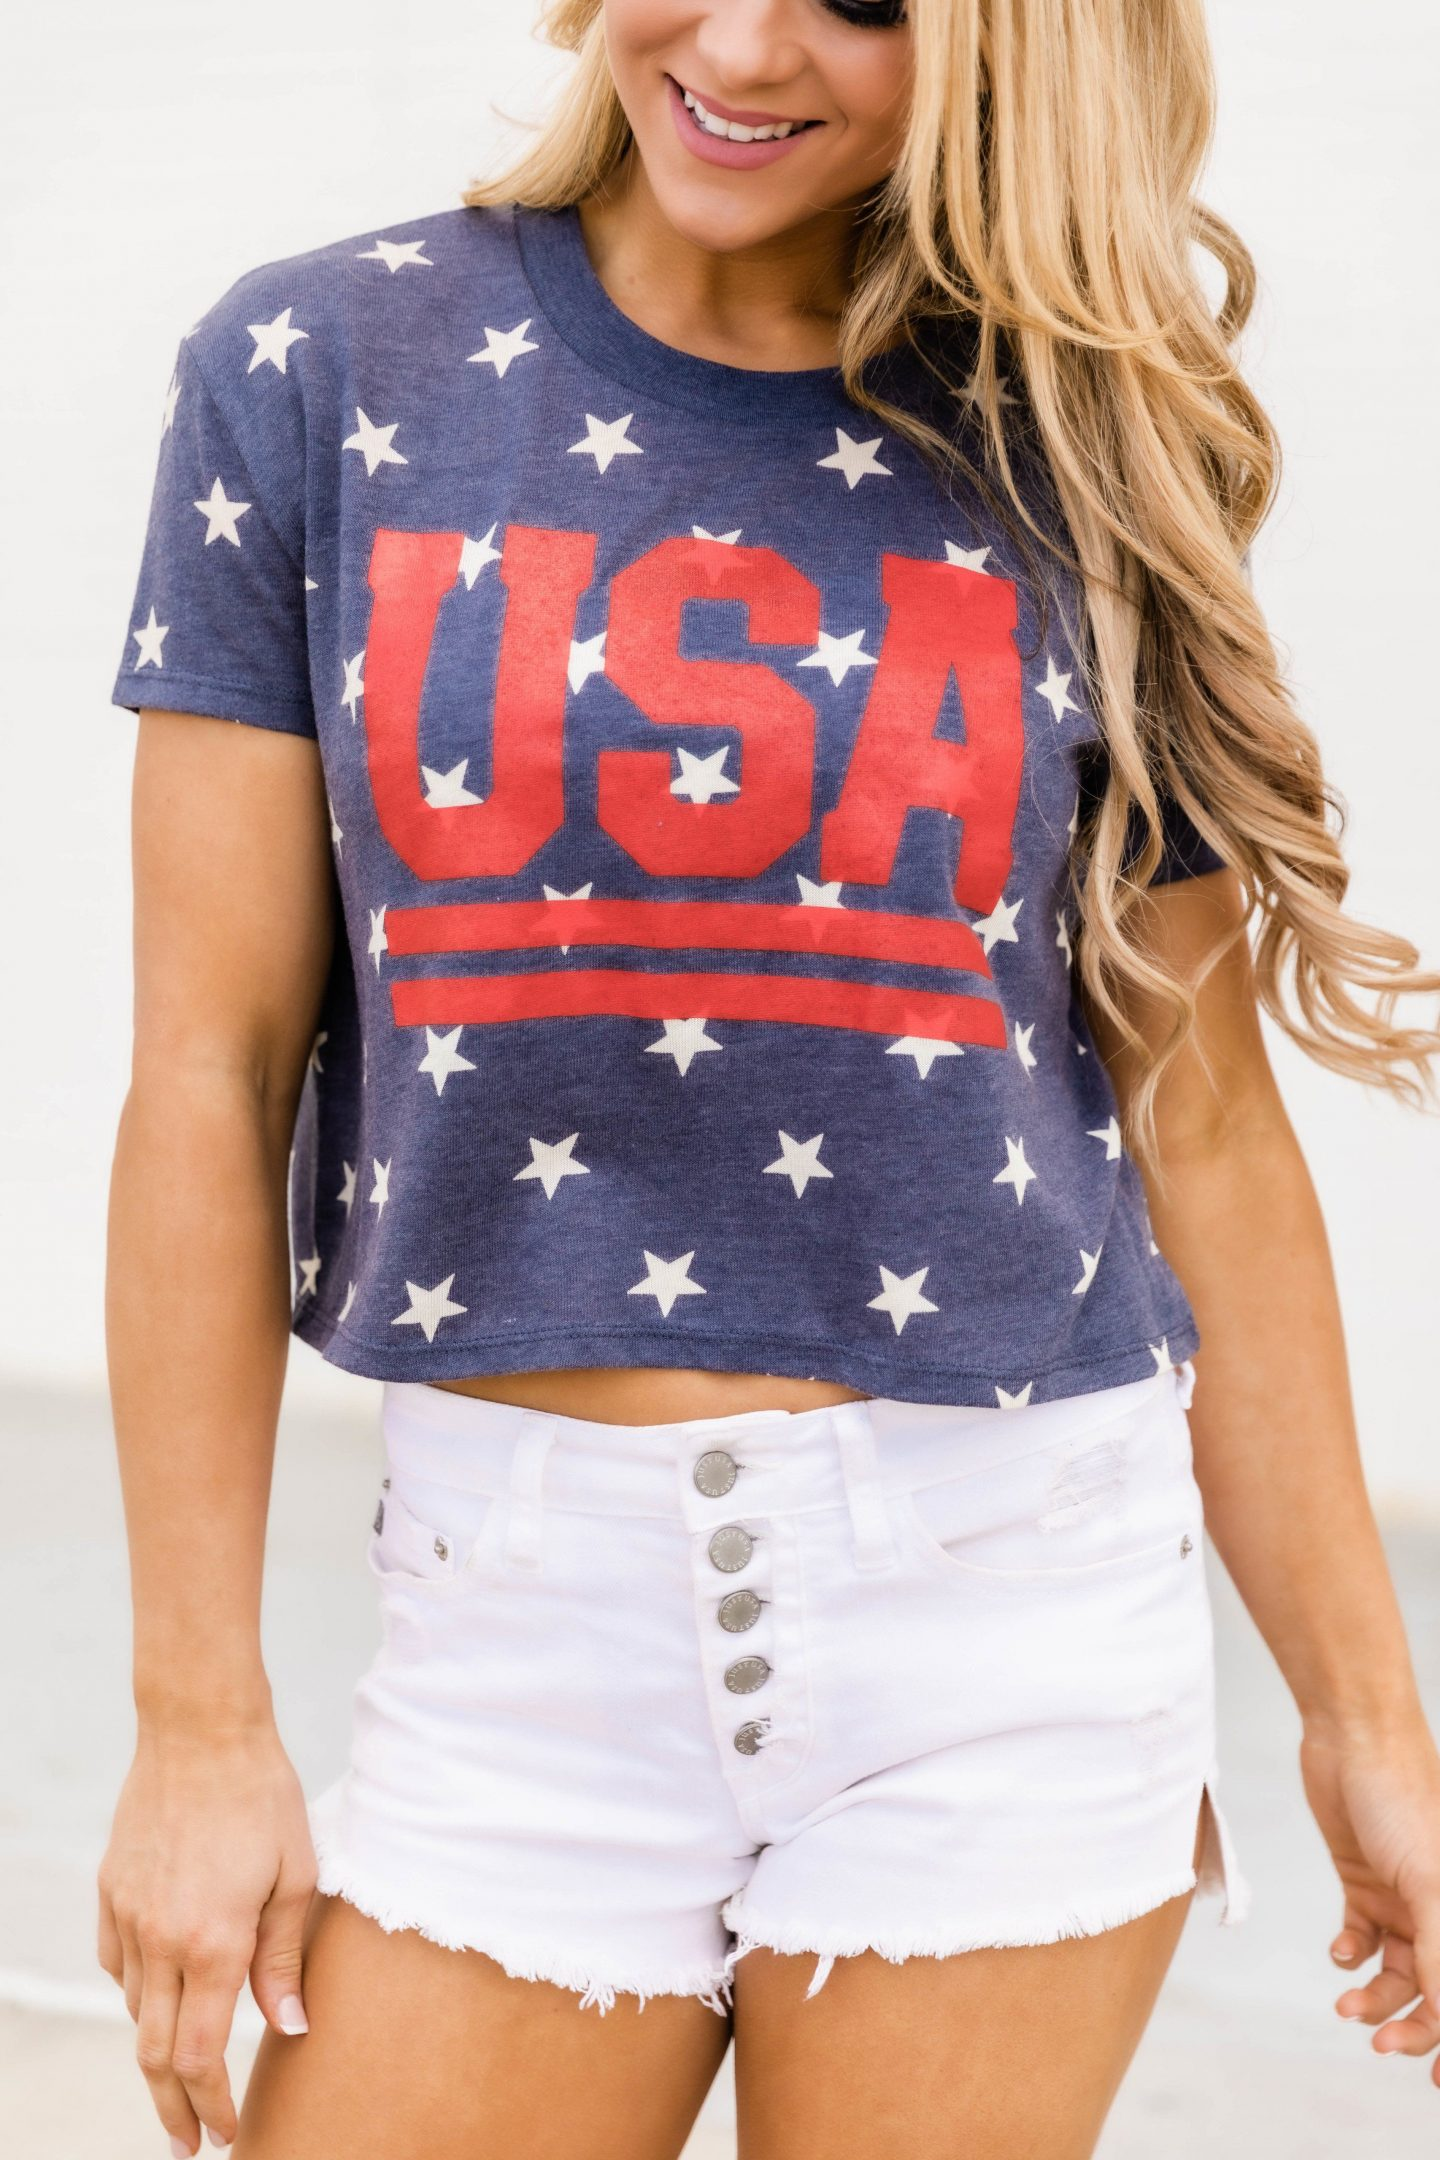 USA T-Shirt - cute July 4th outfit